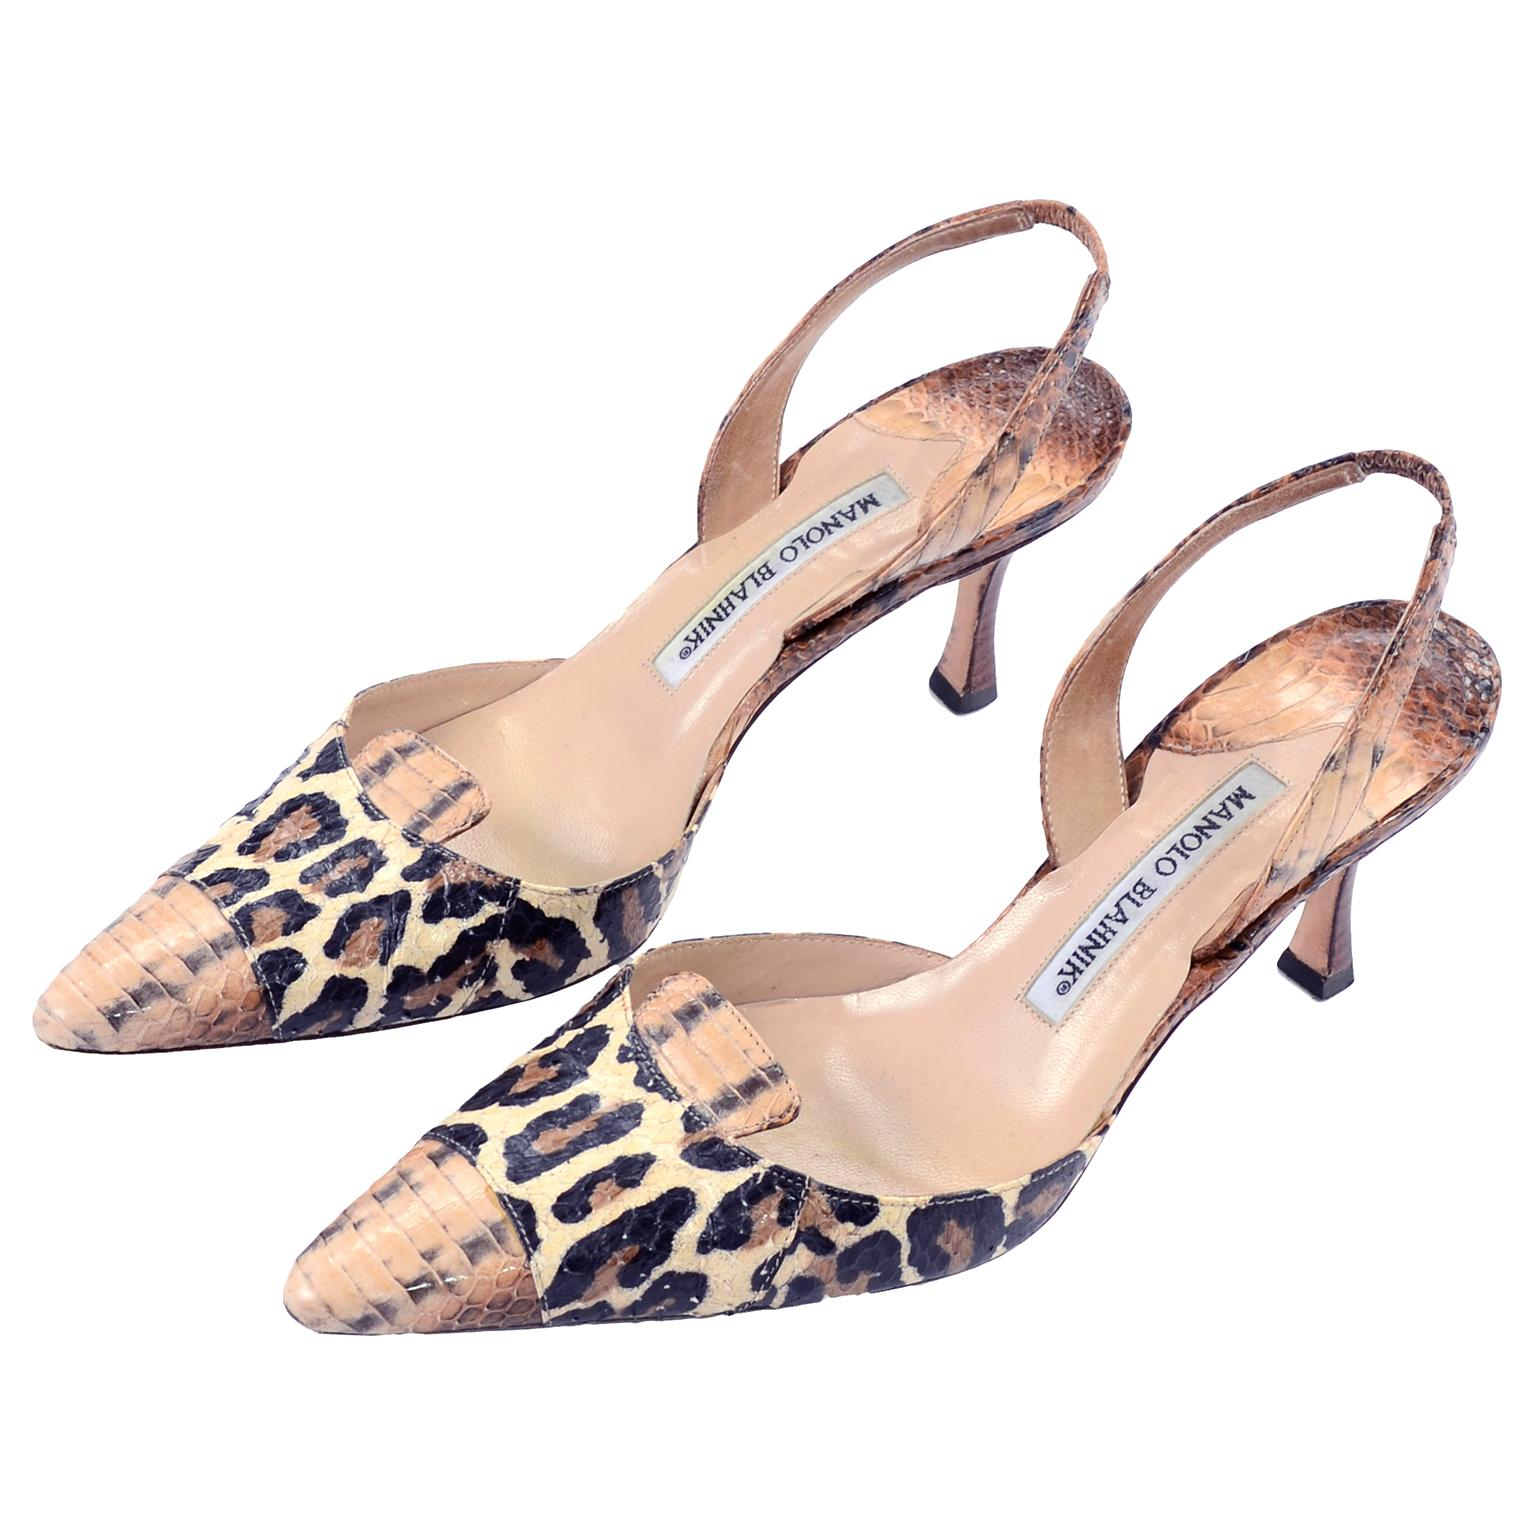 3cb5a7a22233 Vintage Manolo Blahnik Shoes - 81 For Sale at 1stdibs